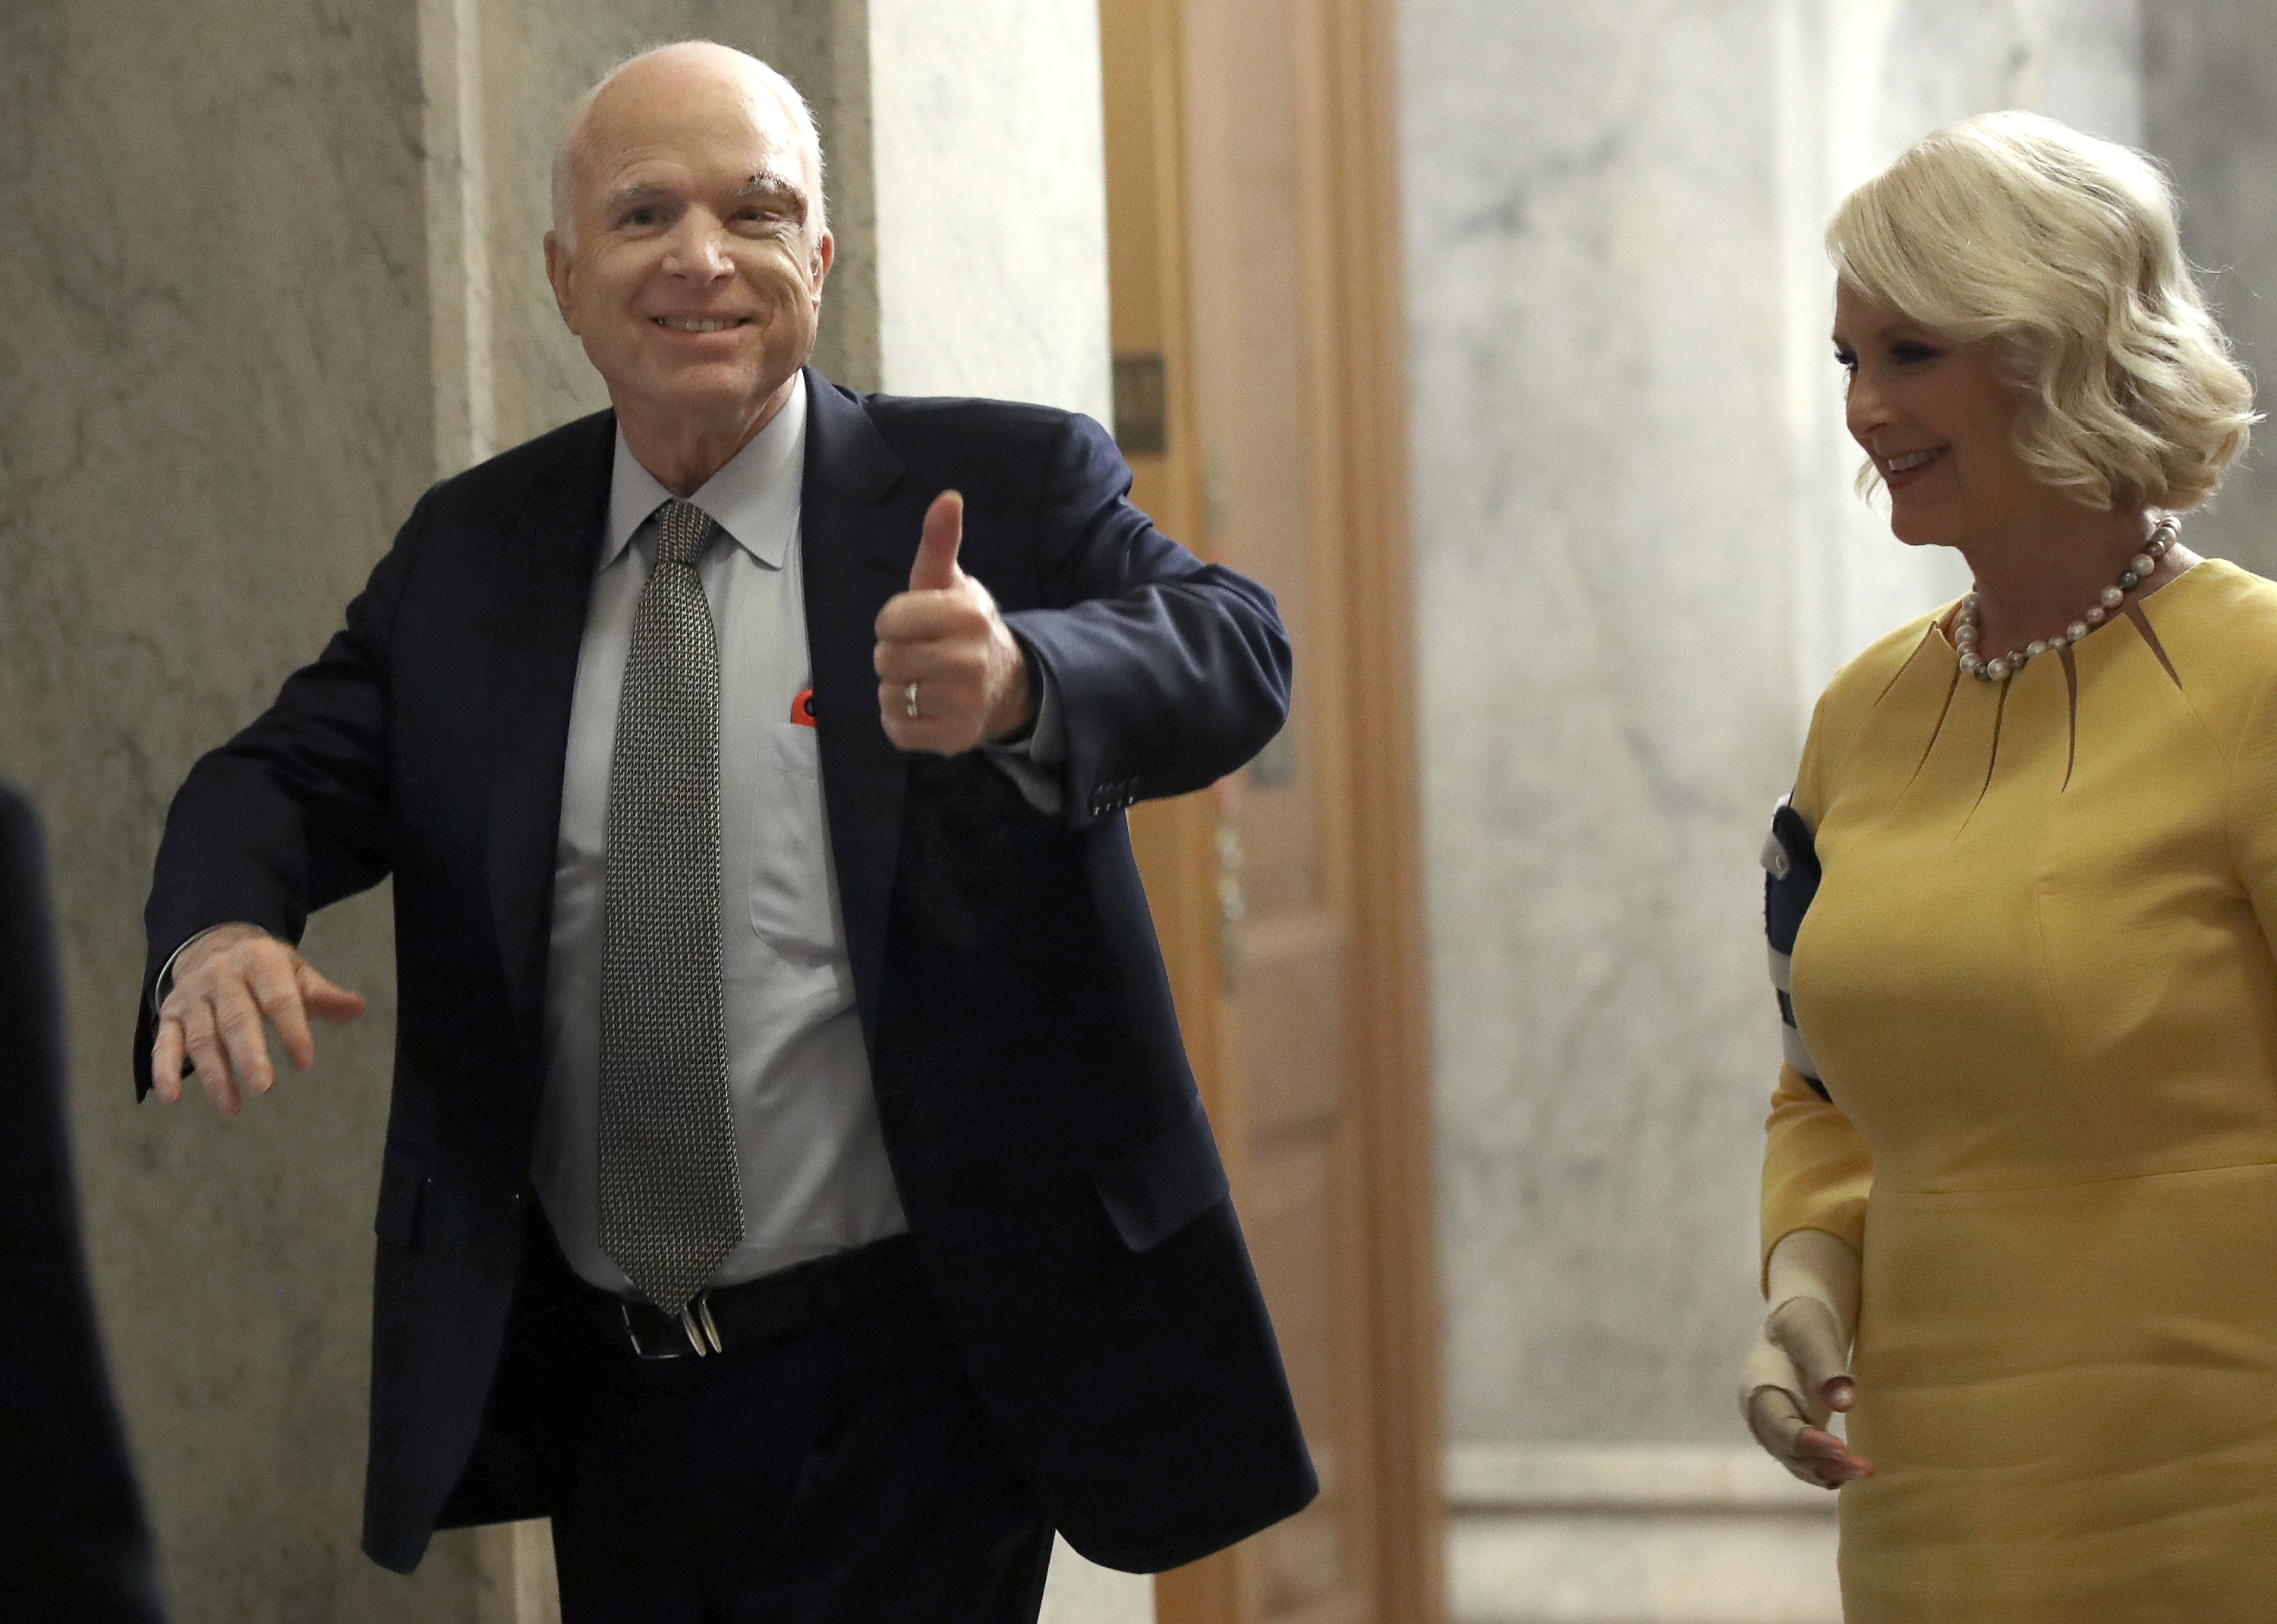 Sen. John McCain, R-Ariz., left, returns to the U.S. Senate accompanied by his wife Cindy on July 25, 2017, in Washington. McCain was recently diagnosed with brain cancer but returned on the day the Senate is holding a key procedural vote on President Donald Trump's effort to repeal and replace the Affordable Care Act. (Win McNamee/Getty Images)